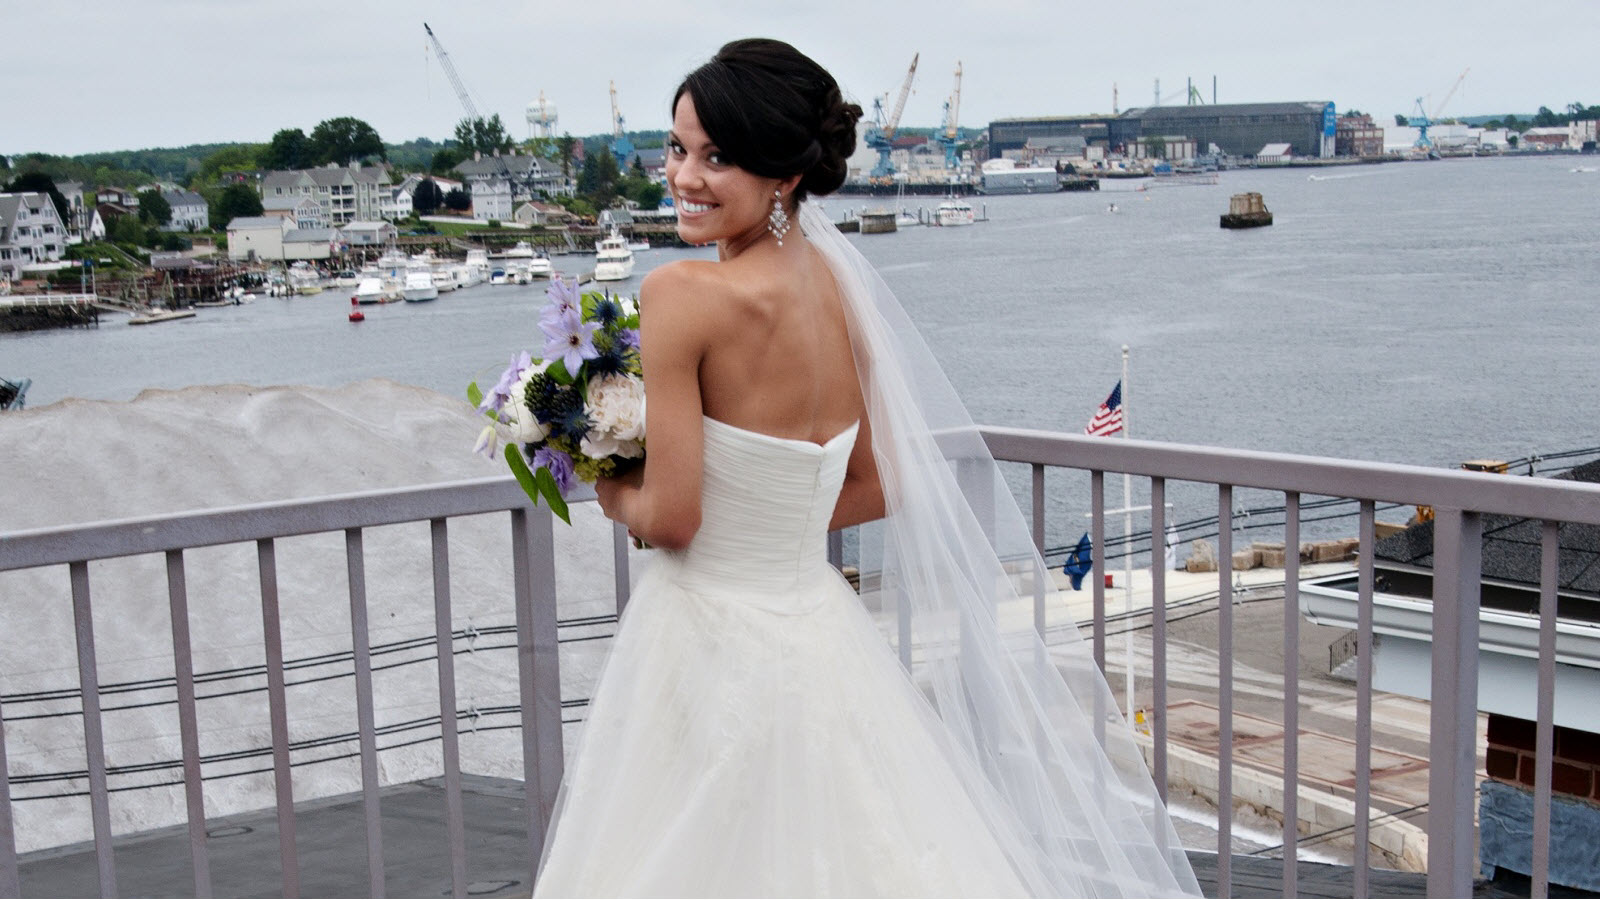 Portsmouth Wedding Venues | Bride on Balcony